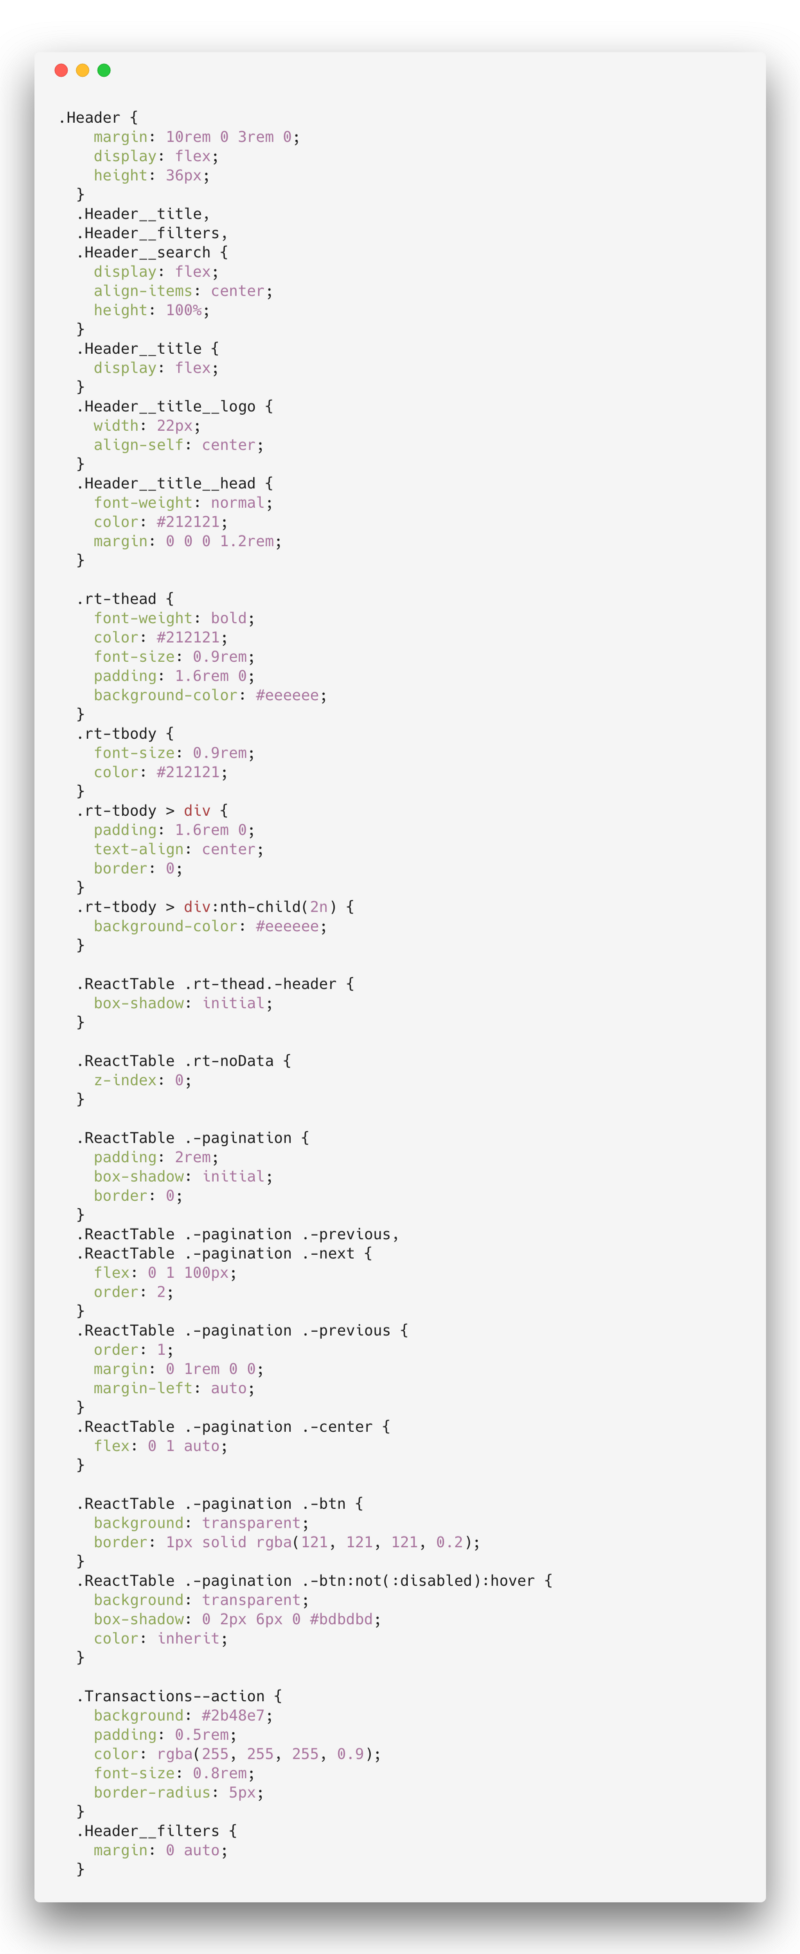 React Table Pagination